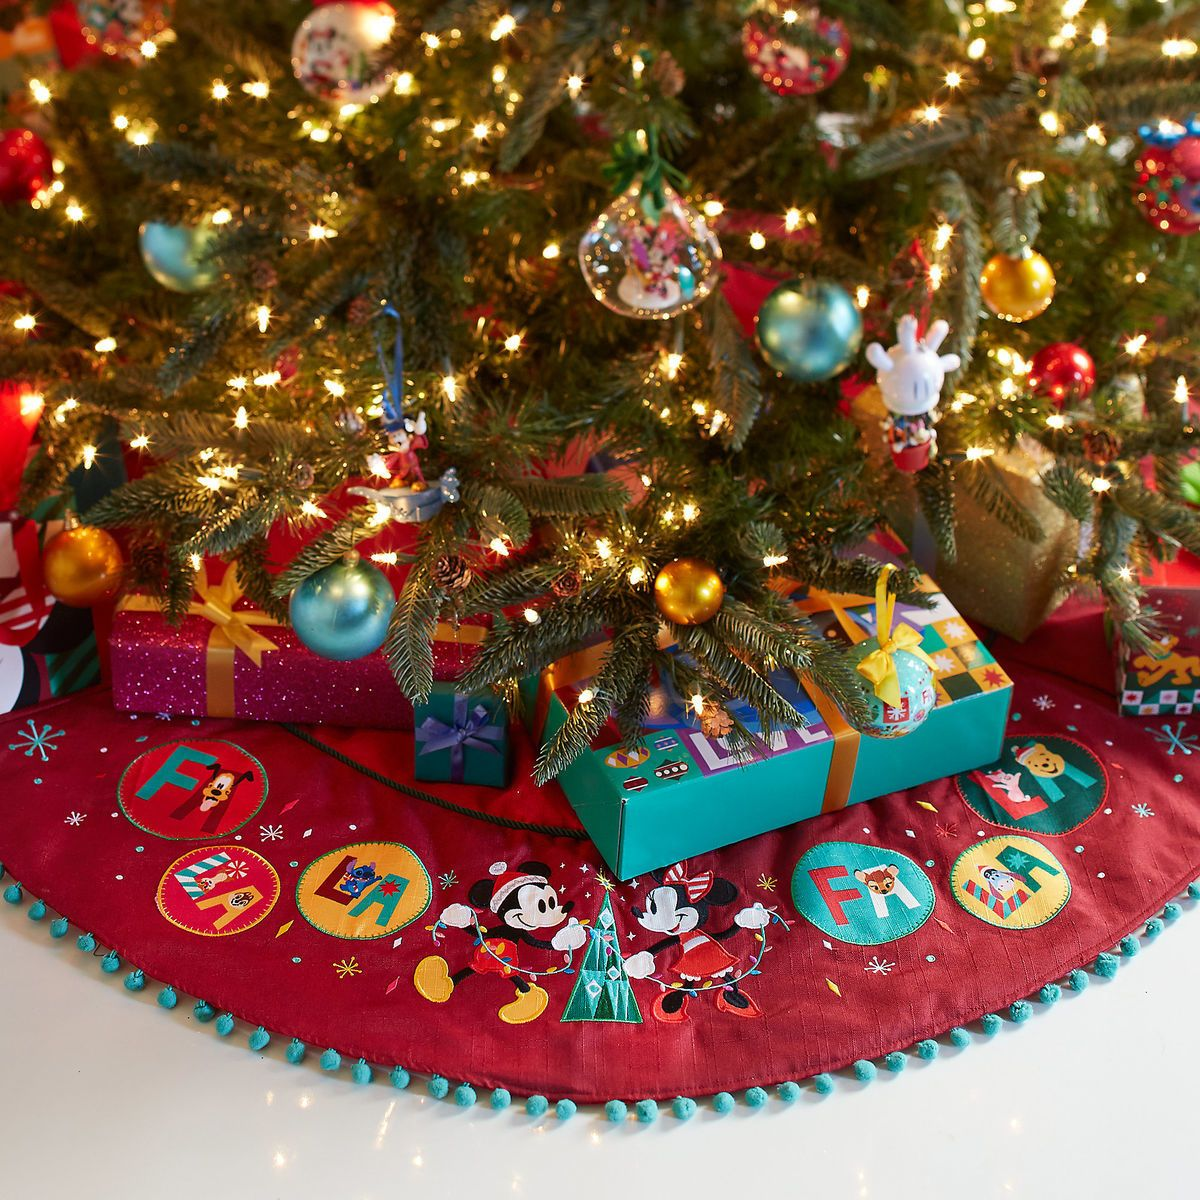 Mickey And Minnie Mouse Holiday Tree Skirt Personalizable Shopdisney Disneytreeskirt D Disney Christmas Tree Diy Christmas Tree Skirt Holiday Tree Skirts